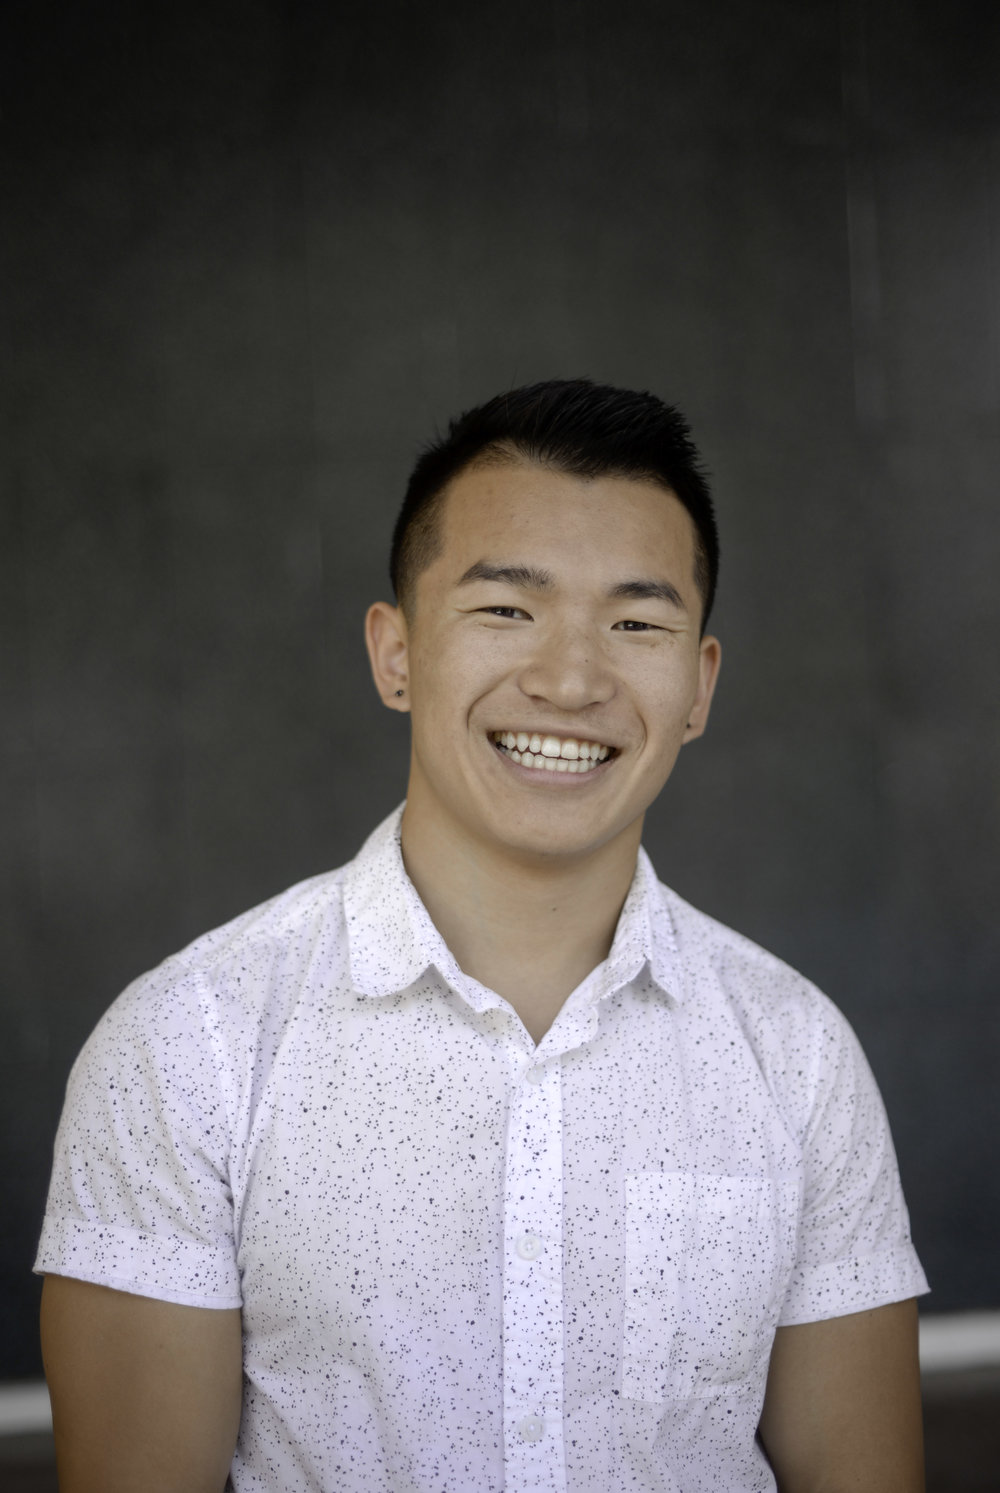 Alvin Lee -Operations Analyst - Alvin is a 5th year at San Jose State University studying Industrial and Systems Engineering. Alvin likes to keep himself busy by being future-oriented. He is also an entrepreneur, a pianist, and a DJ.